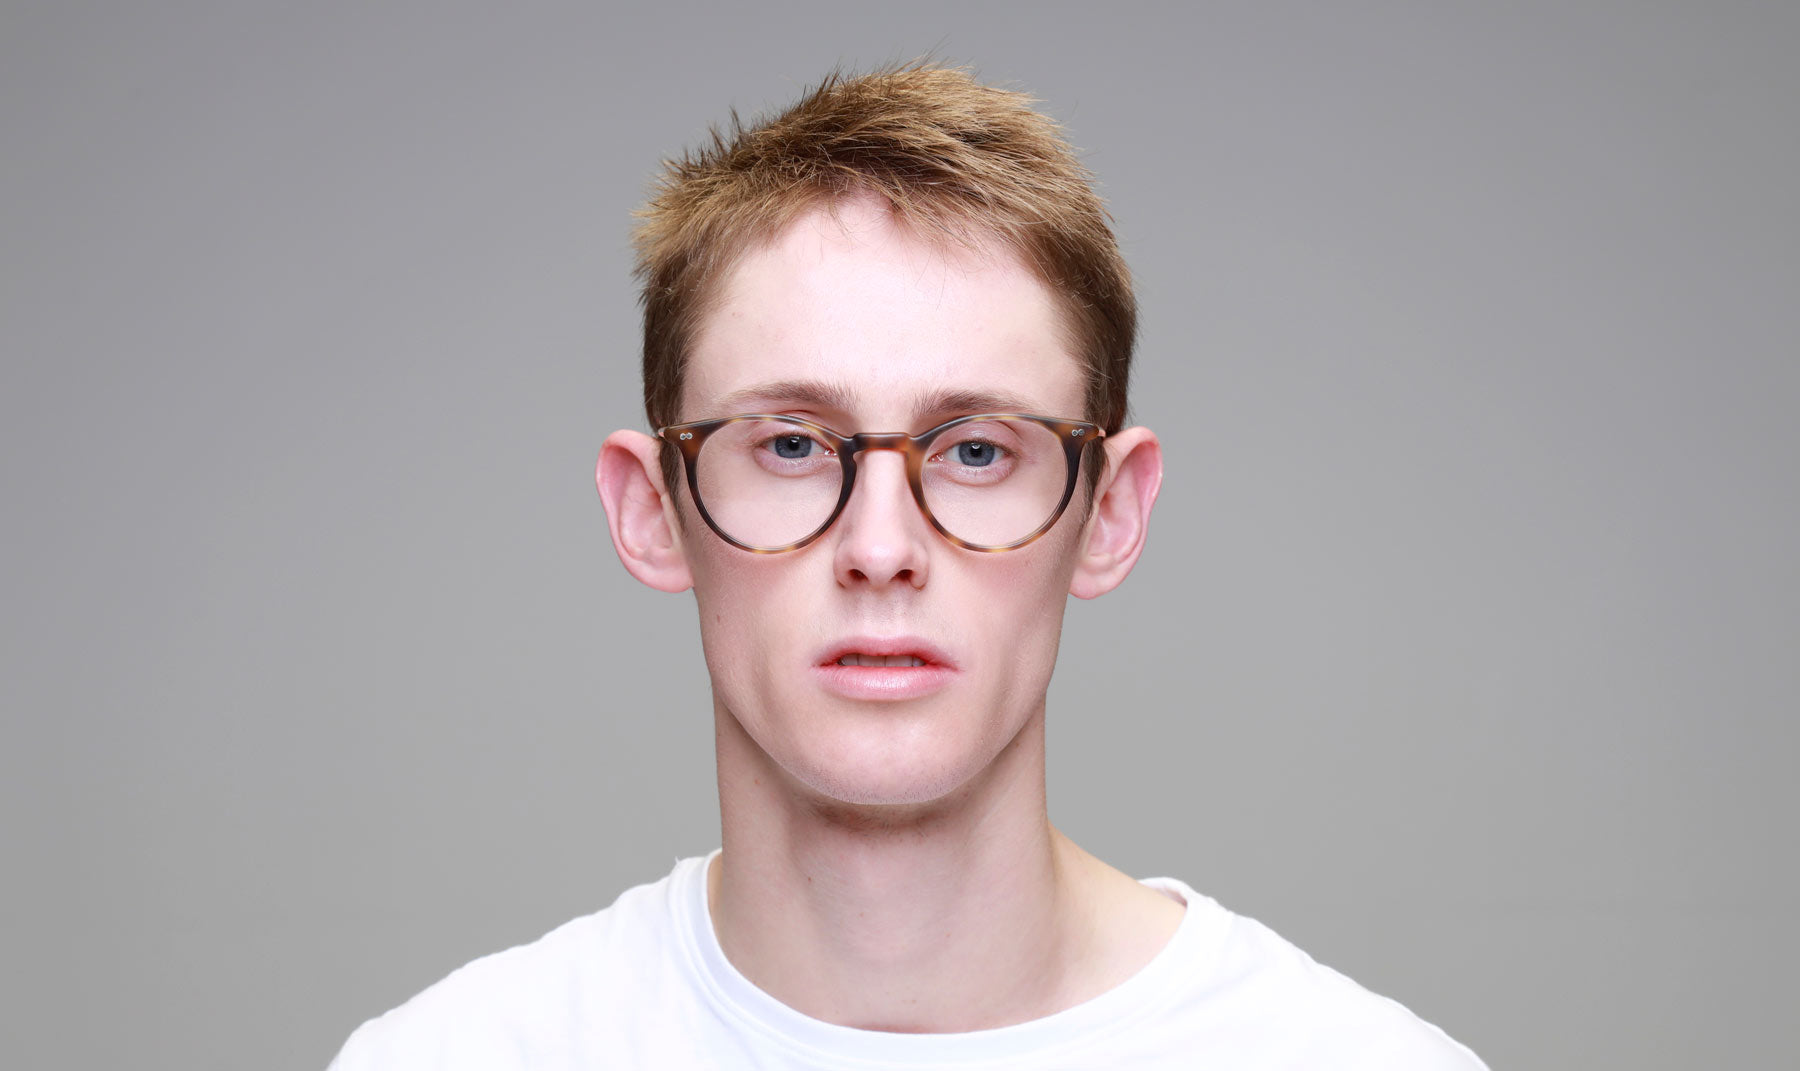 Man-Wearing-Round-Tortoise-shell-Glasses-Frame